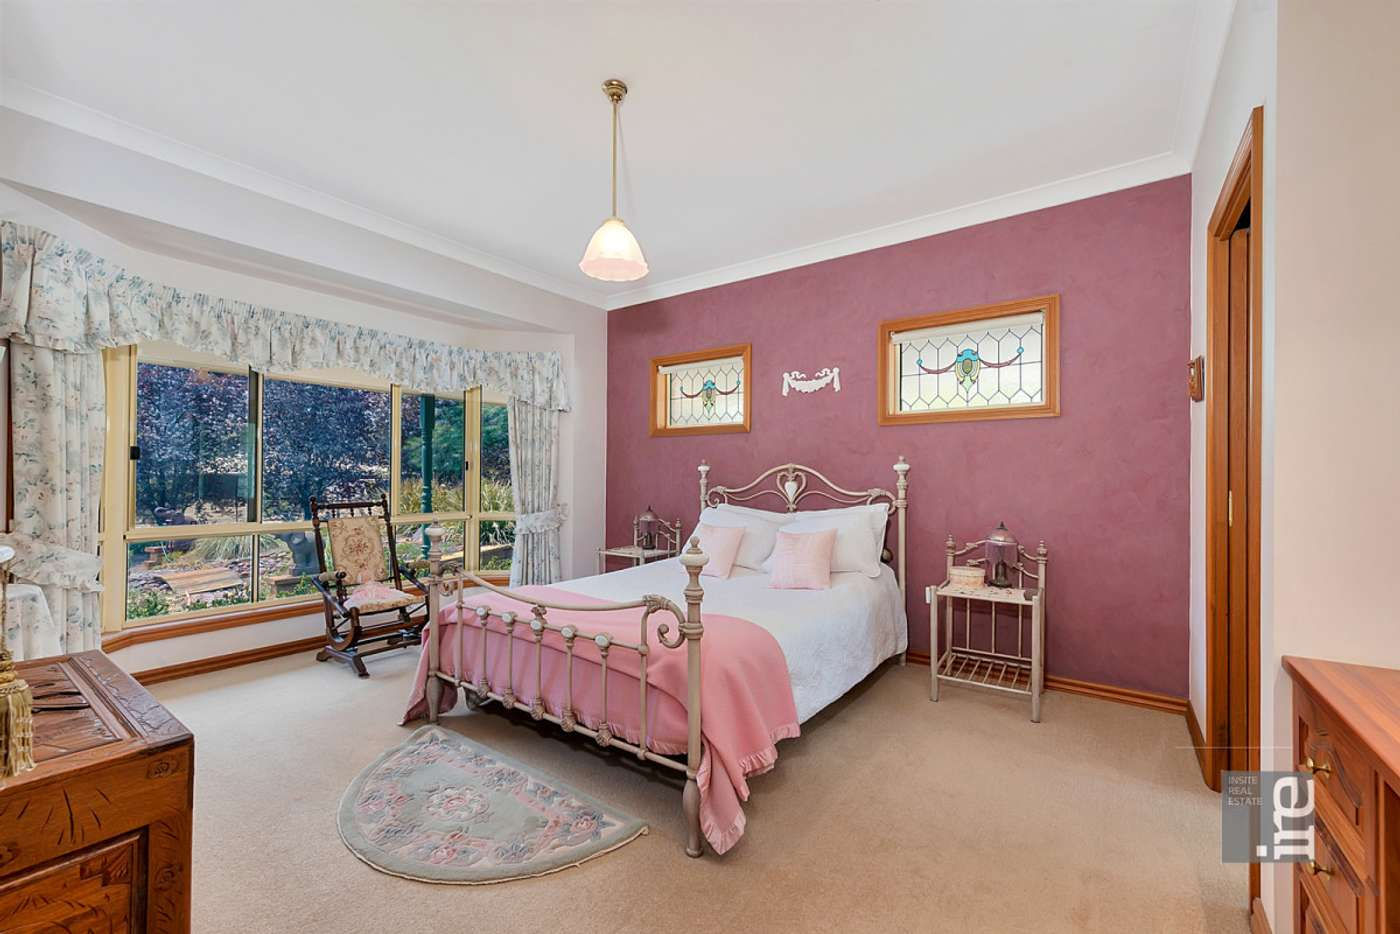 Sixth view of Homely house listing, 9 Brewer Lane, Eldorado VIC 3746